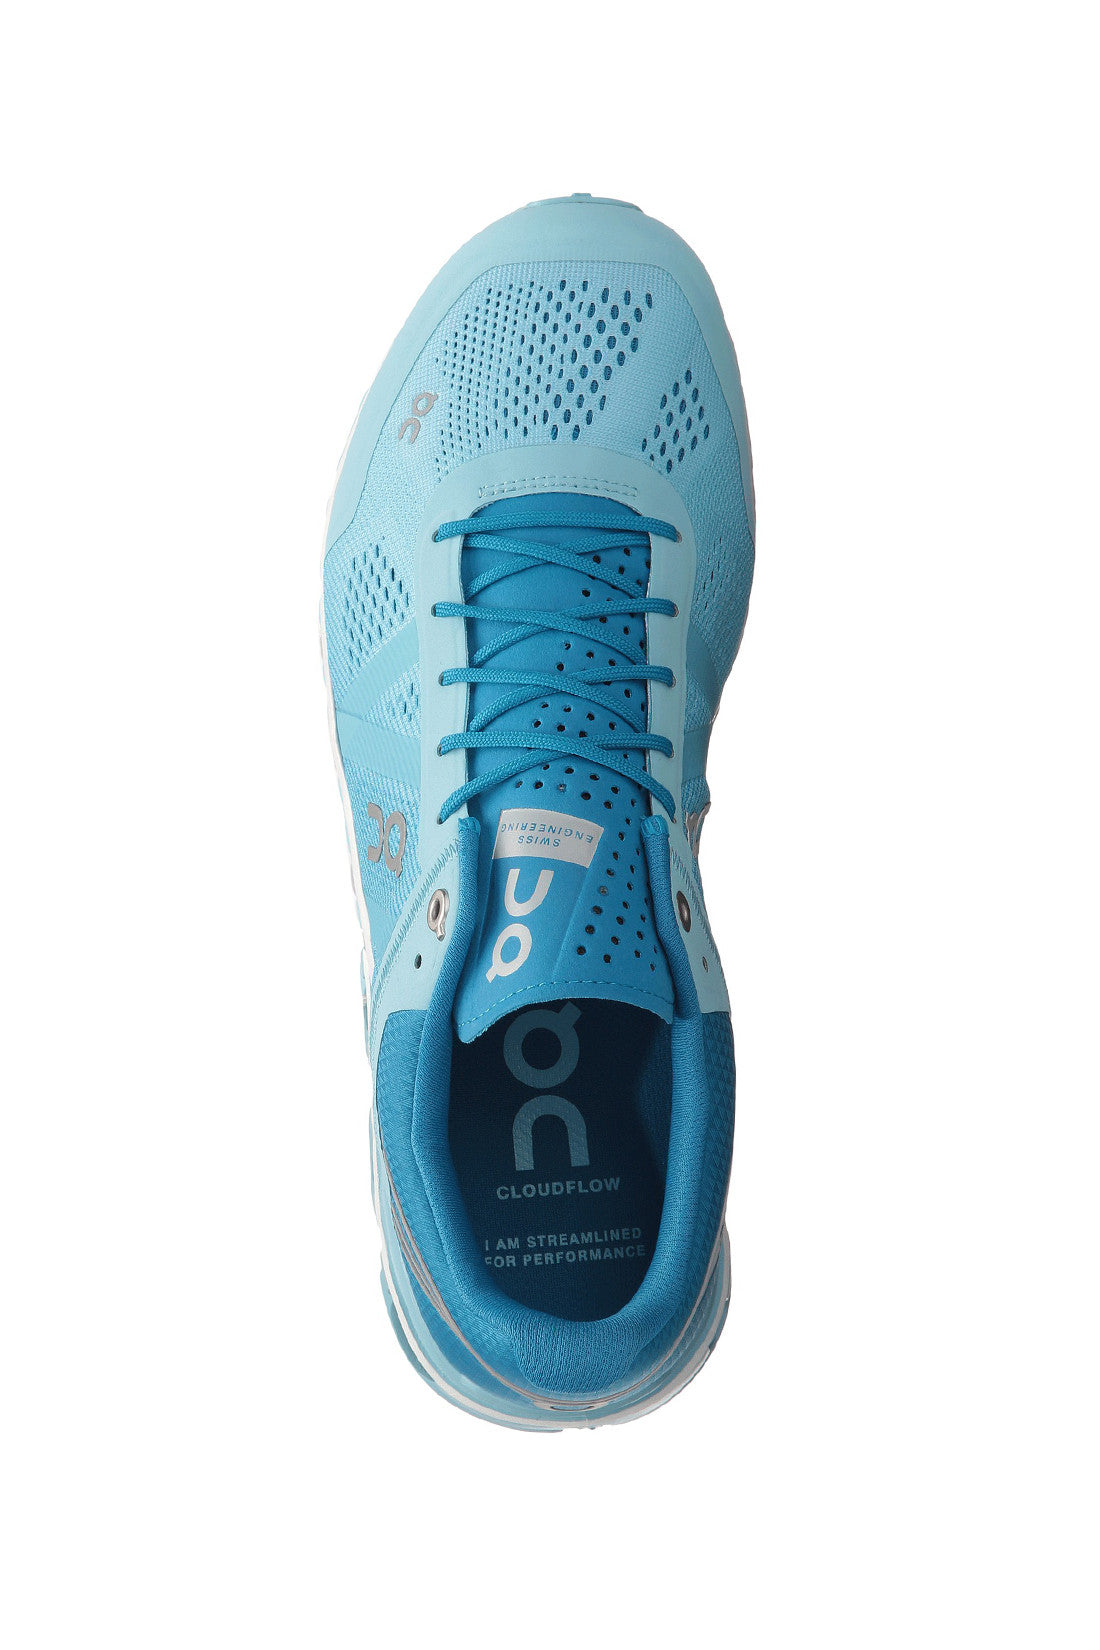 Swiss engineering, best performance shoes, breathable, spin class, Women's Cloudflow Running Shoe - Blue Haze